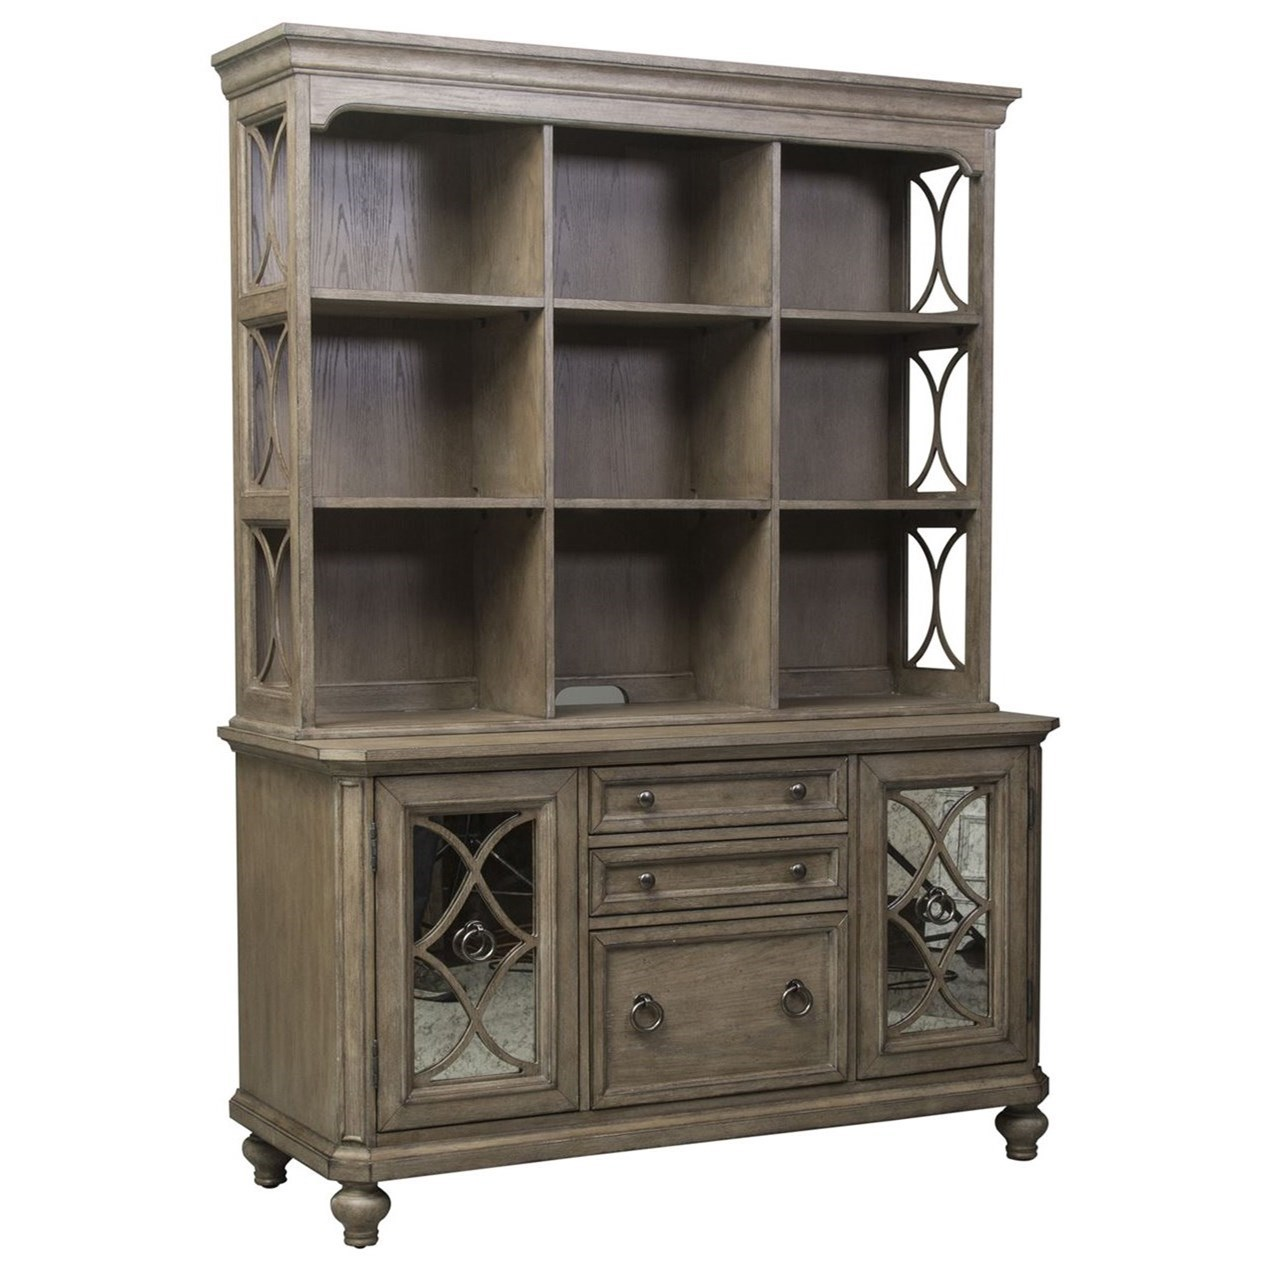 Simply Elegant Credenza and Hutch by Liberty Furniture at Northeast Factory Direct